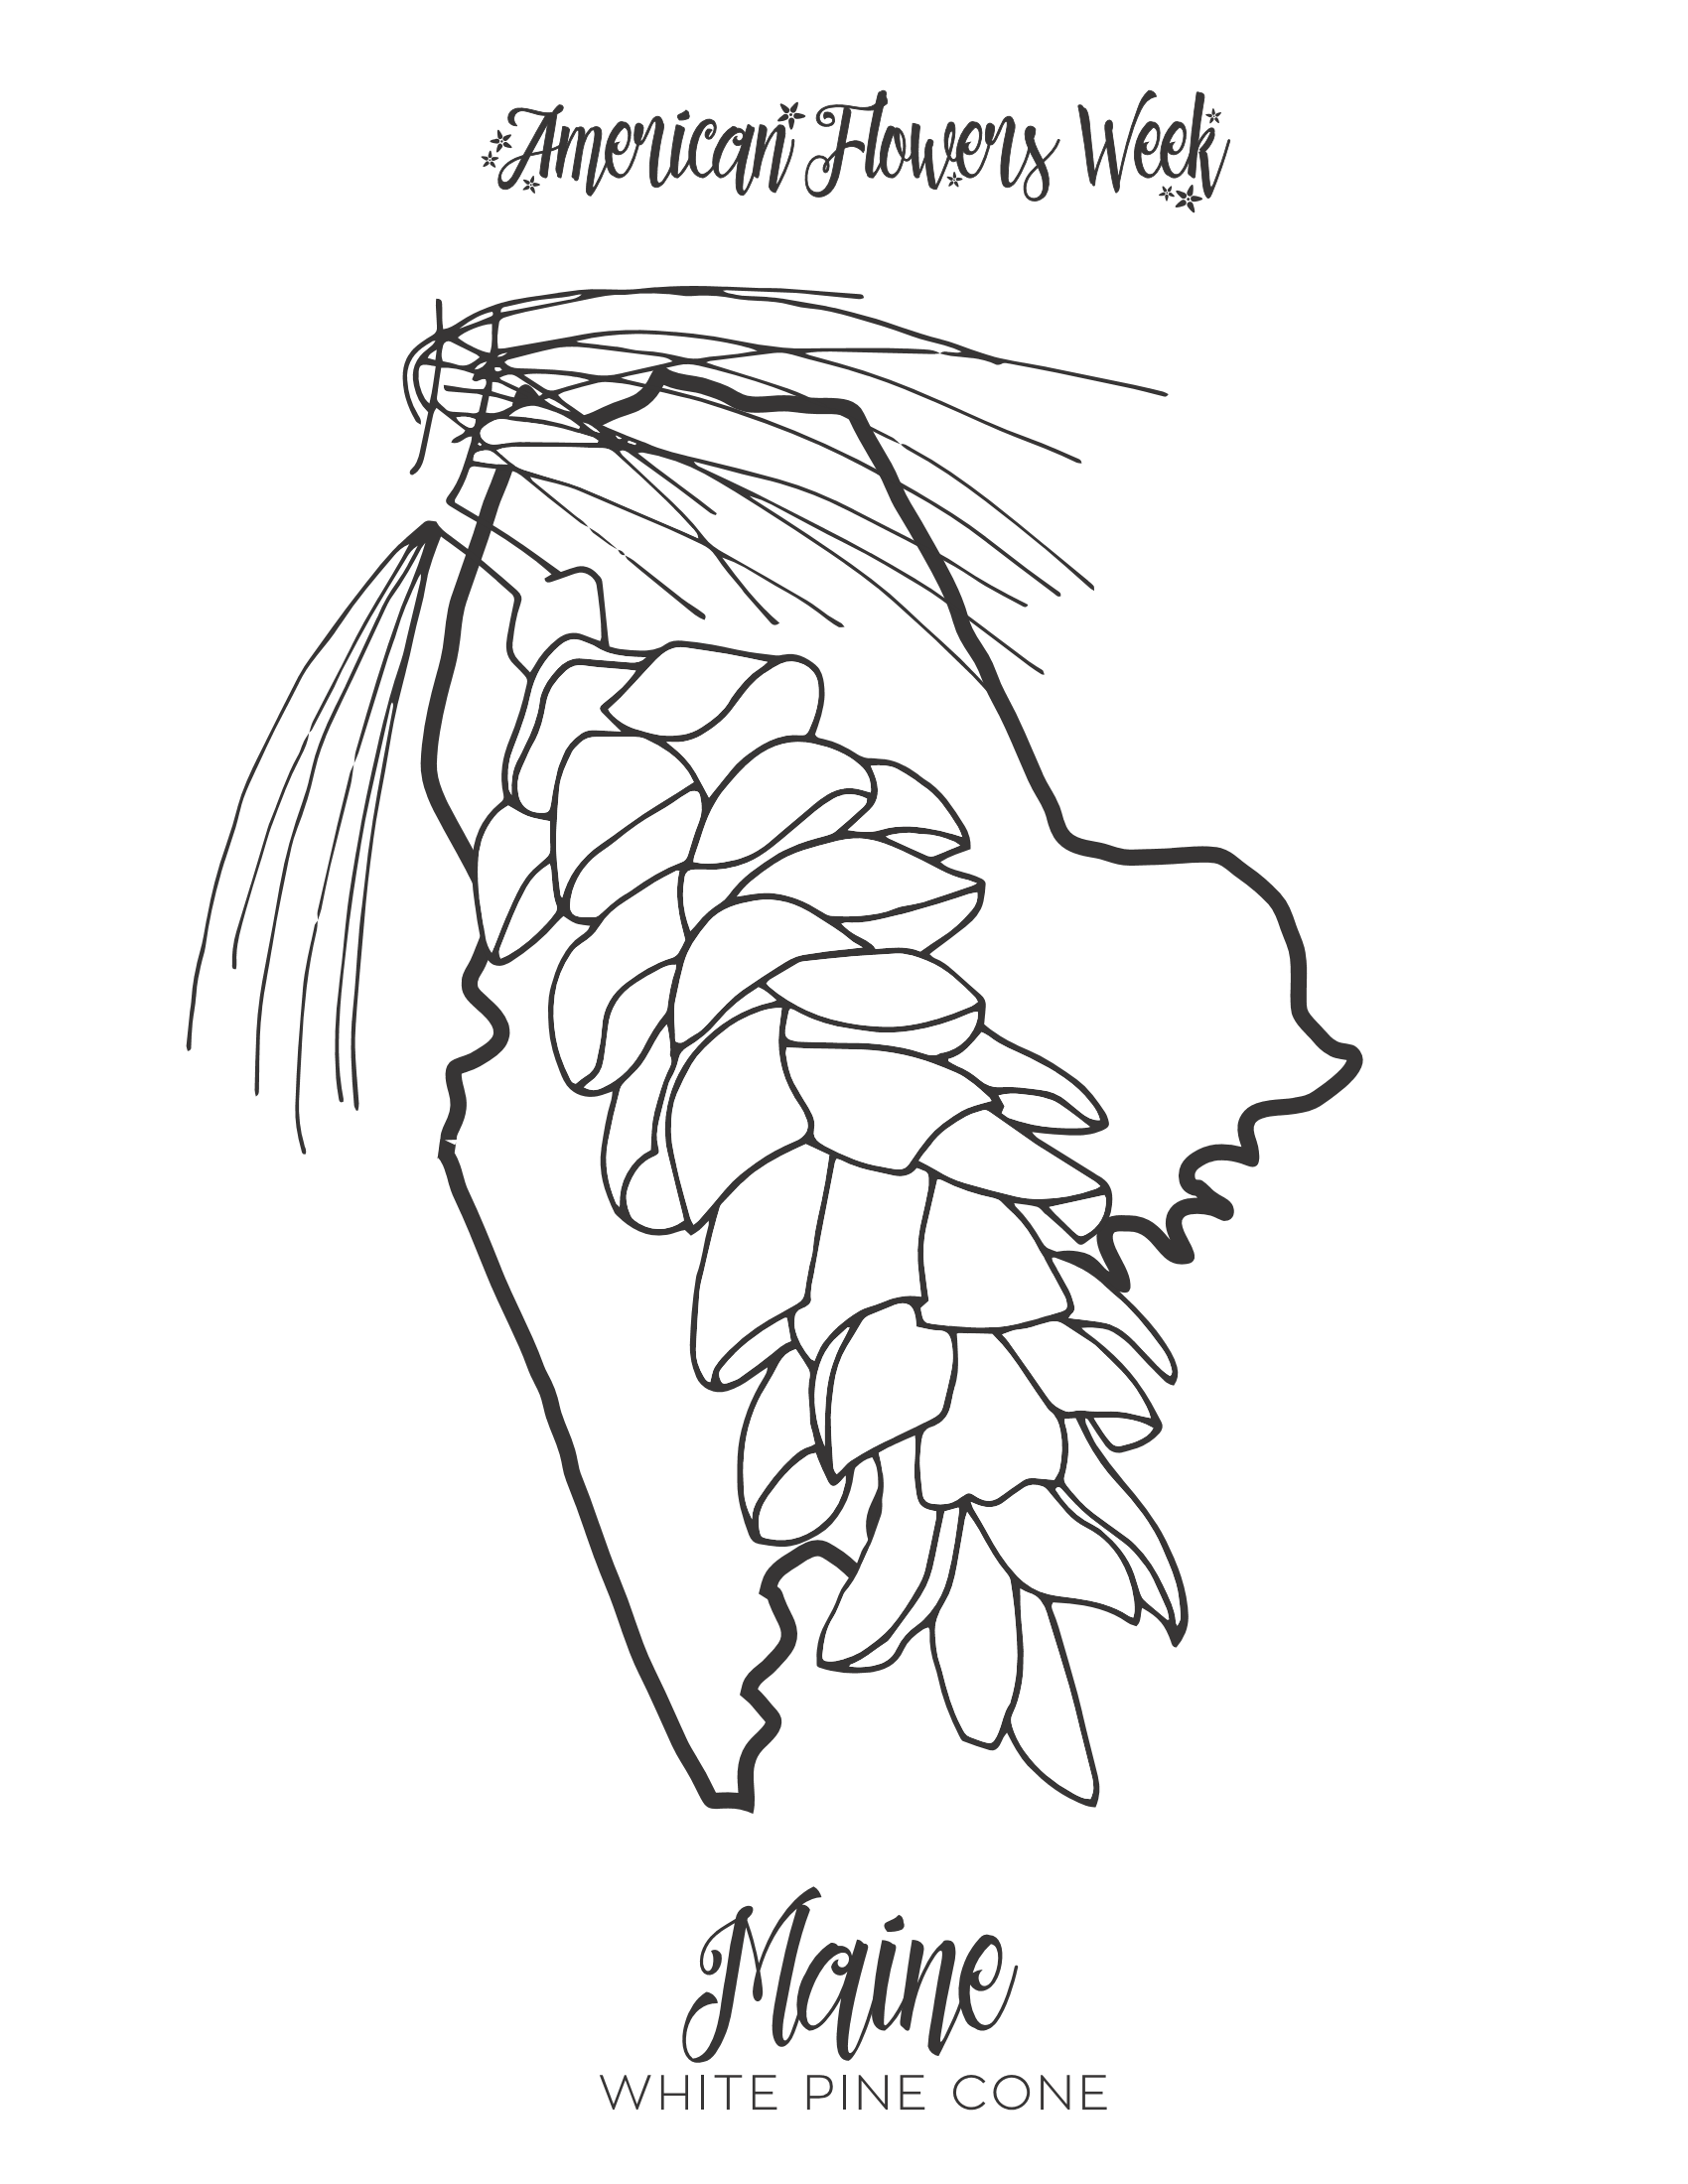 maine state flower 50 state flowers free coloring pages american flowers week flower state maine